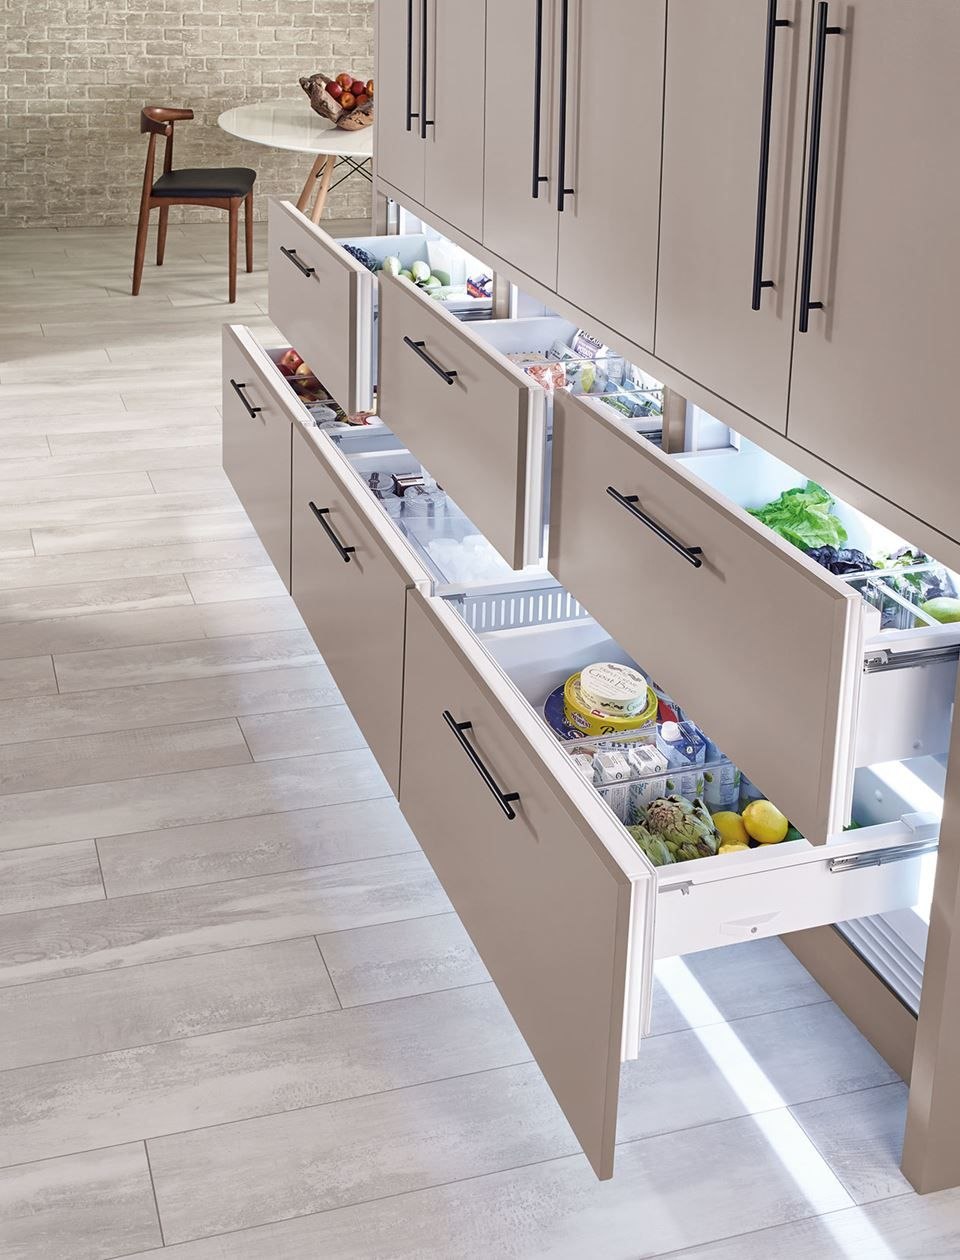 Sub Zero Undercounter Refrigeration Has Compact Counter Refrigerator Options That Can Have Custom Panels L Home Decor Kitchen Home Kitchens Kitchen Renovation